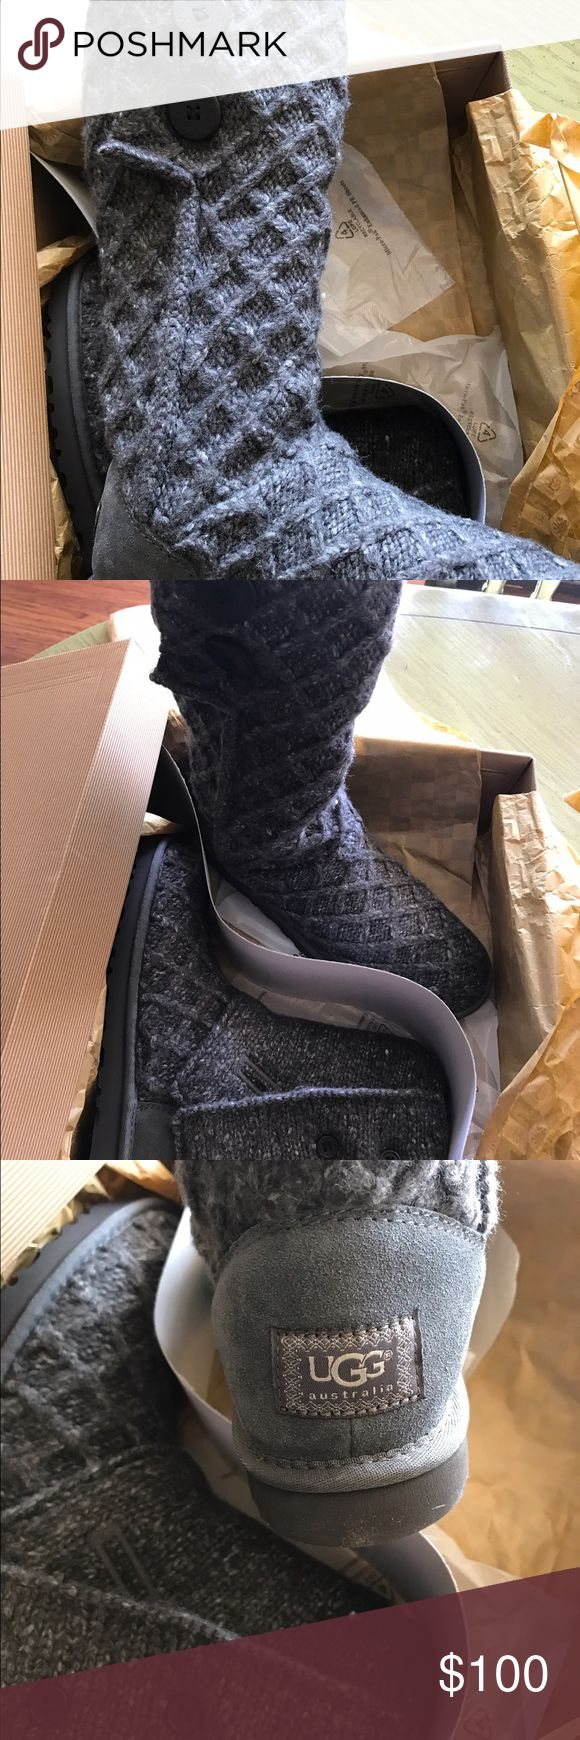 Ugg Cardy Lattice Size 9 Charcoal gray Ugg Lattice Cardy Size 9 New in box. Paid $140. Runs big. Size down. UGG Shoes Ankle Boots & Booties